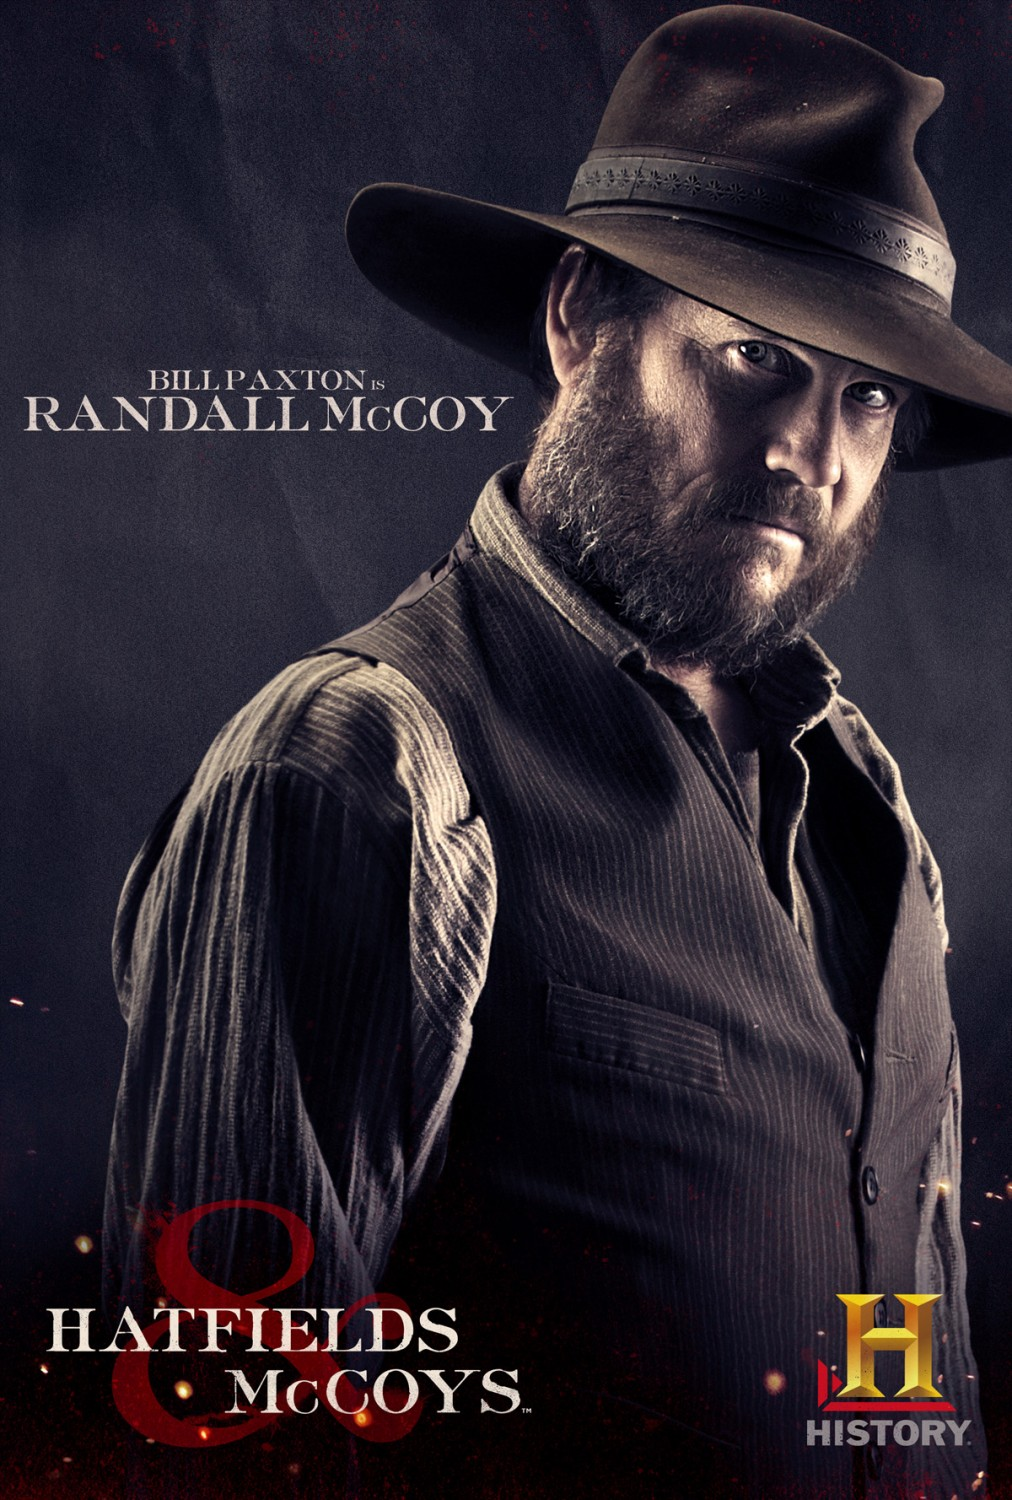 Extra Large Movie Poster Image for Hatfields & McCoys